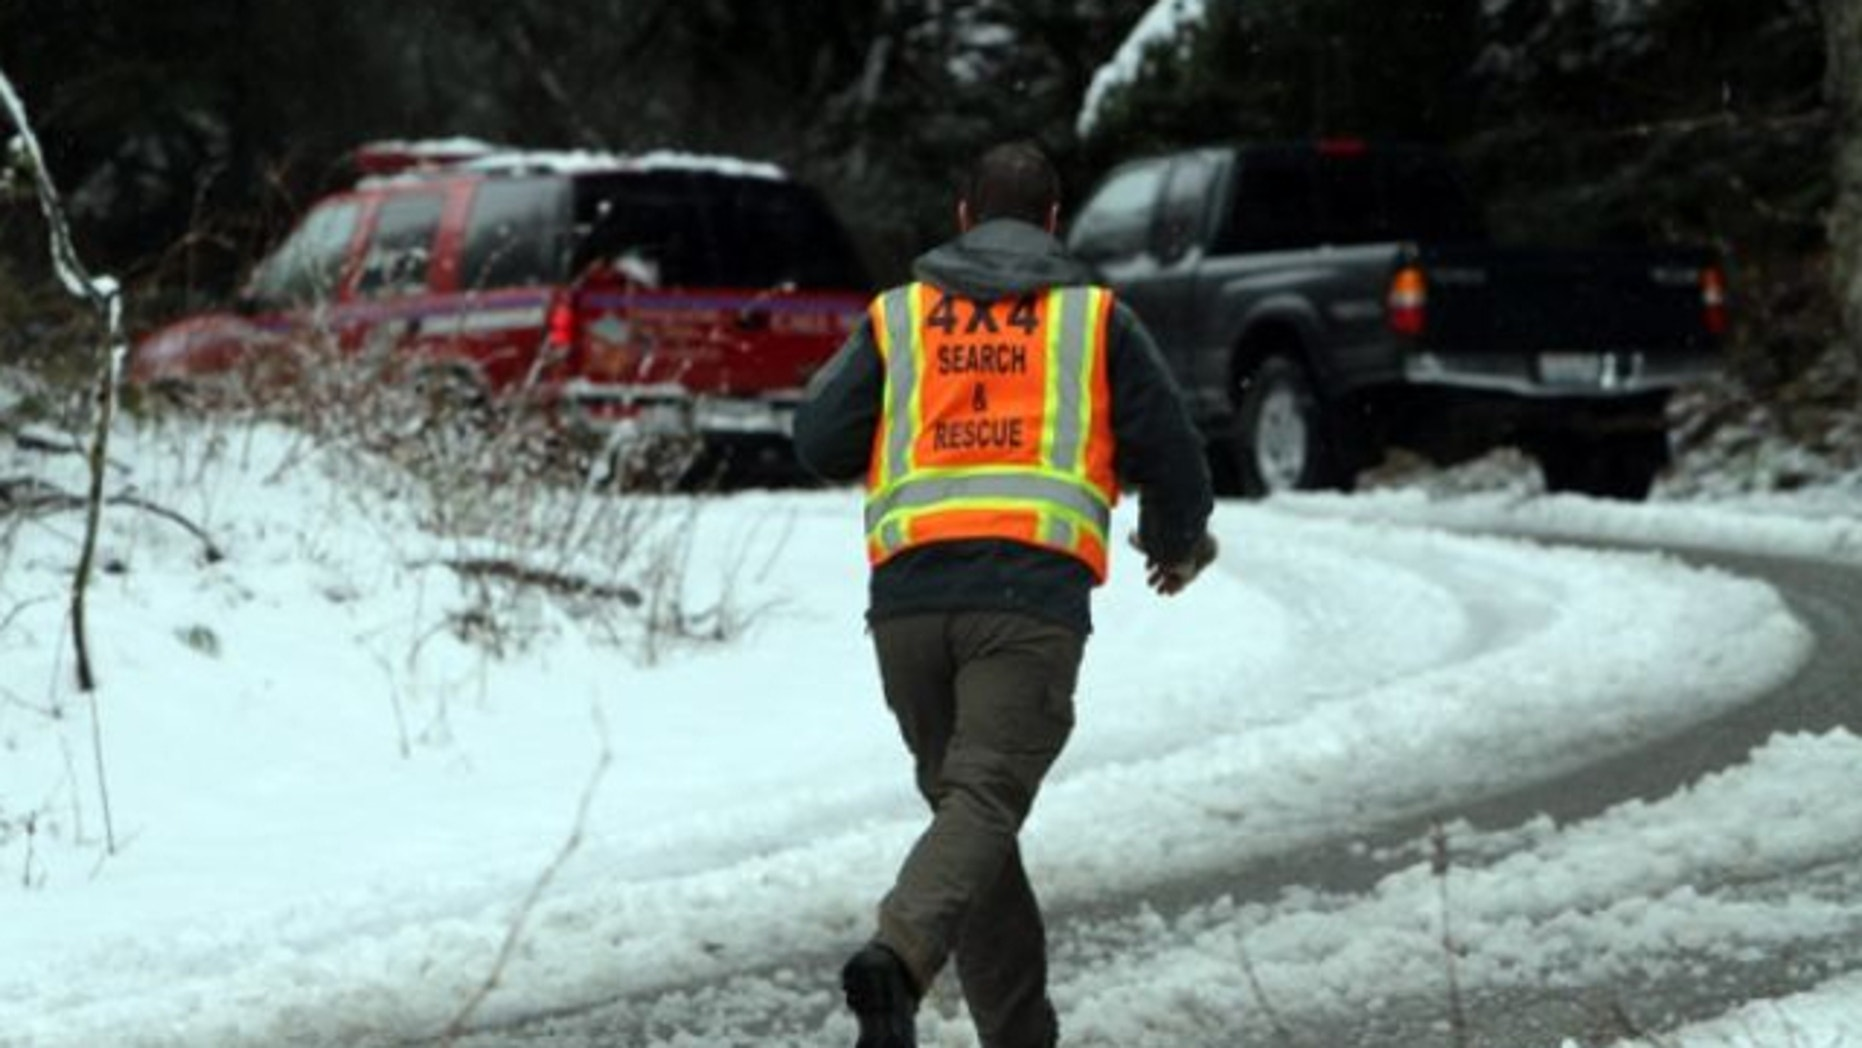 April 13, 2013: A man with King County Search and Rescue runs toward scene of avalanche at exit 47 along I-90 near Snoqualmie Pass.